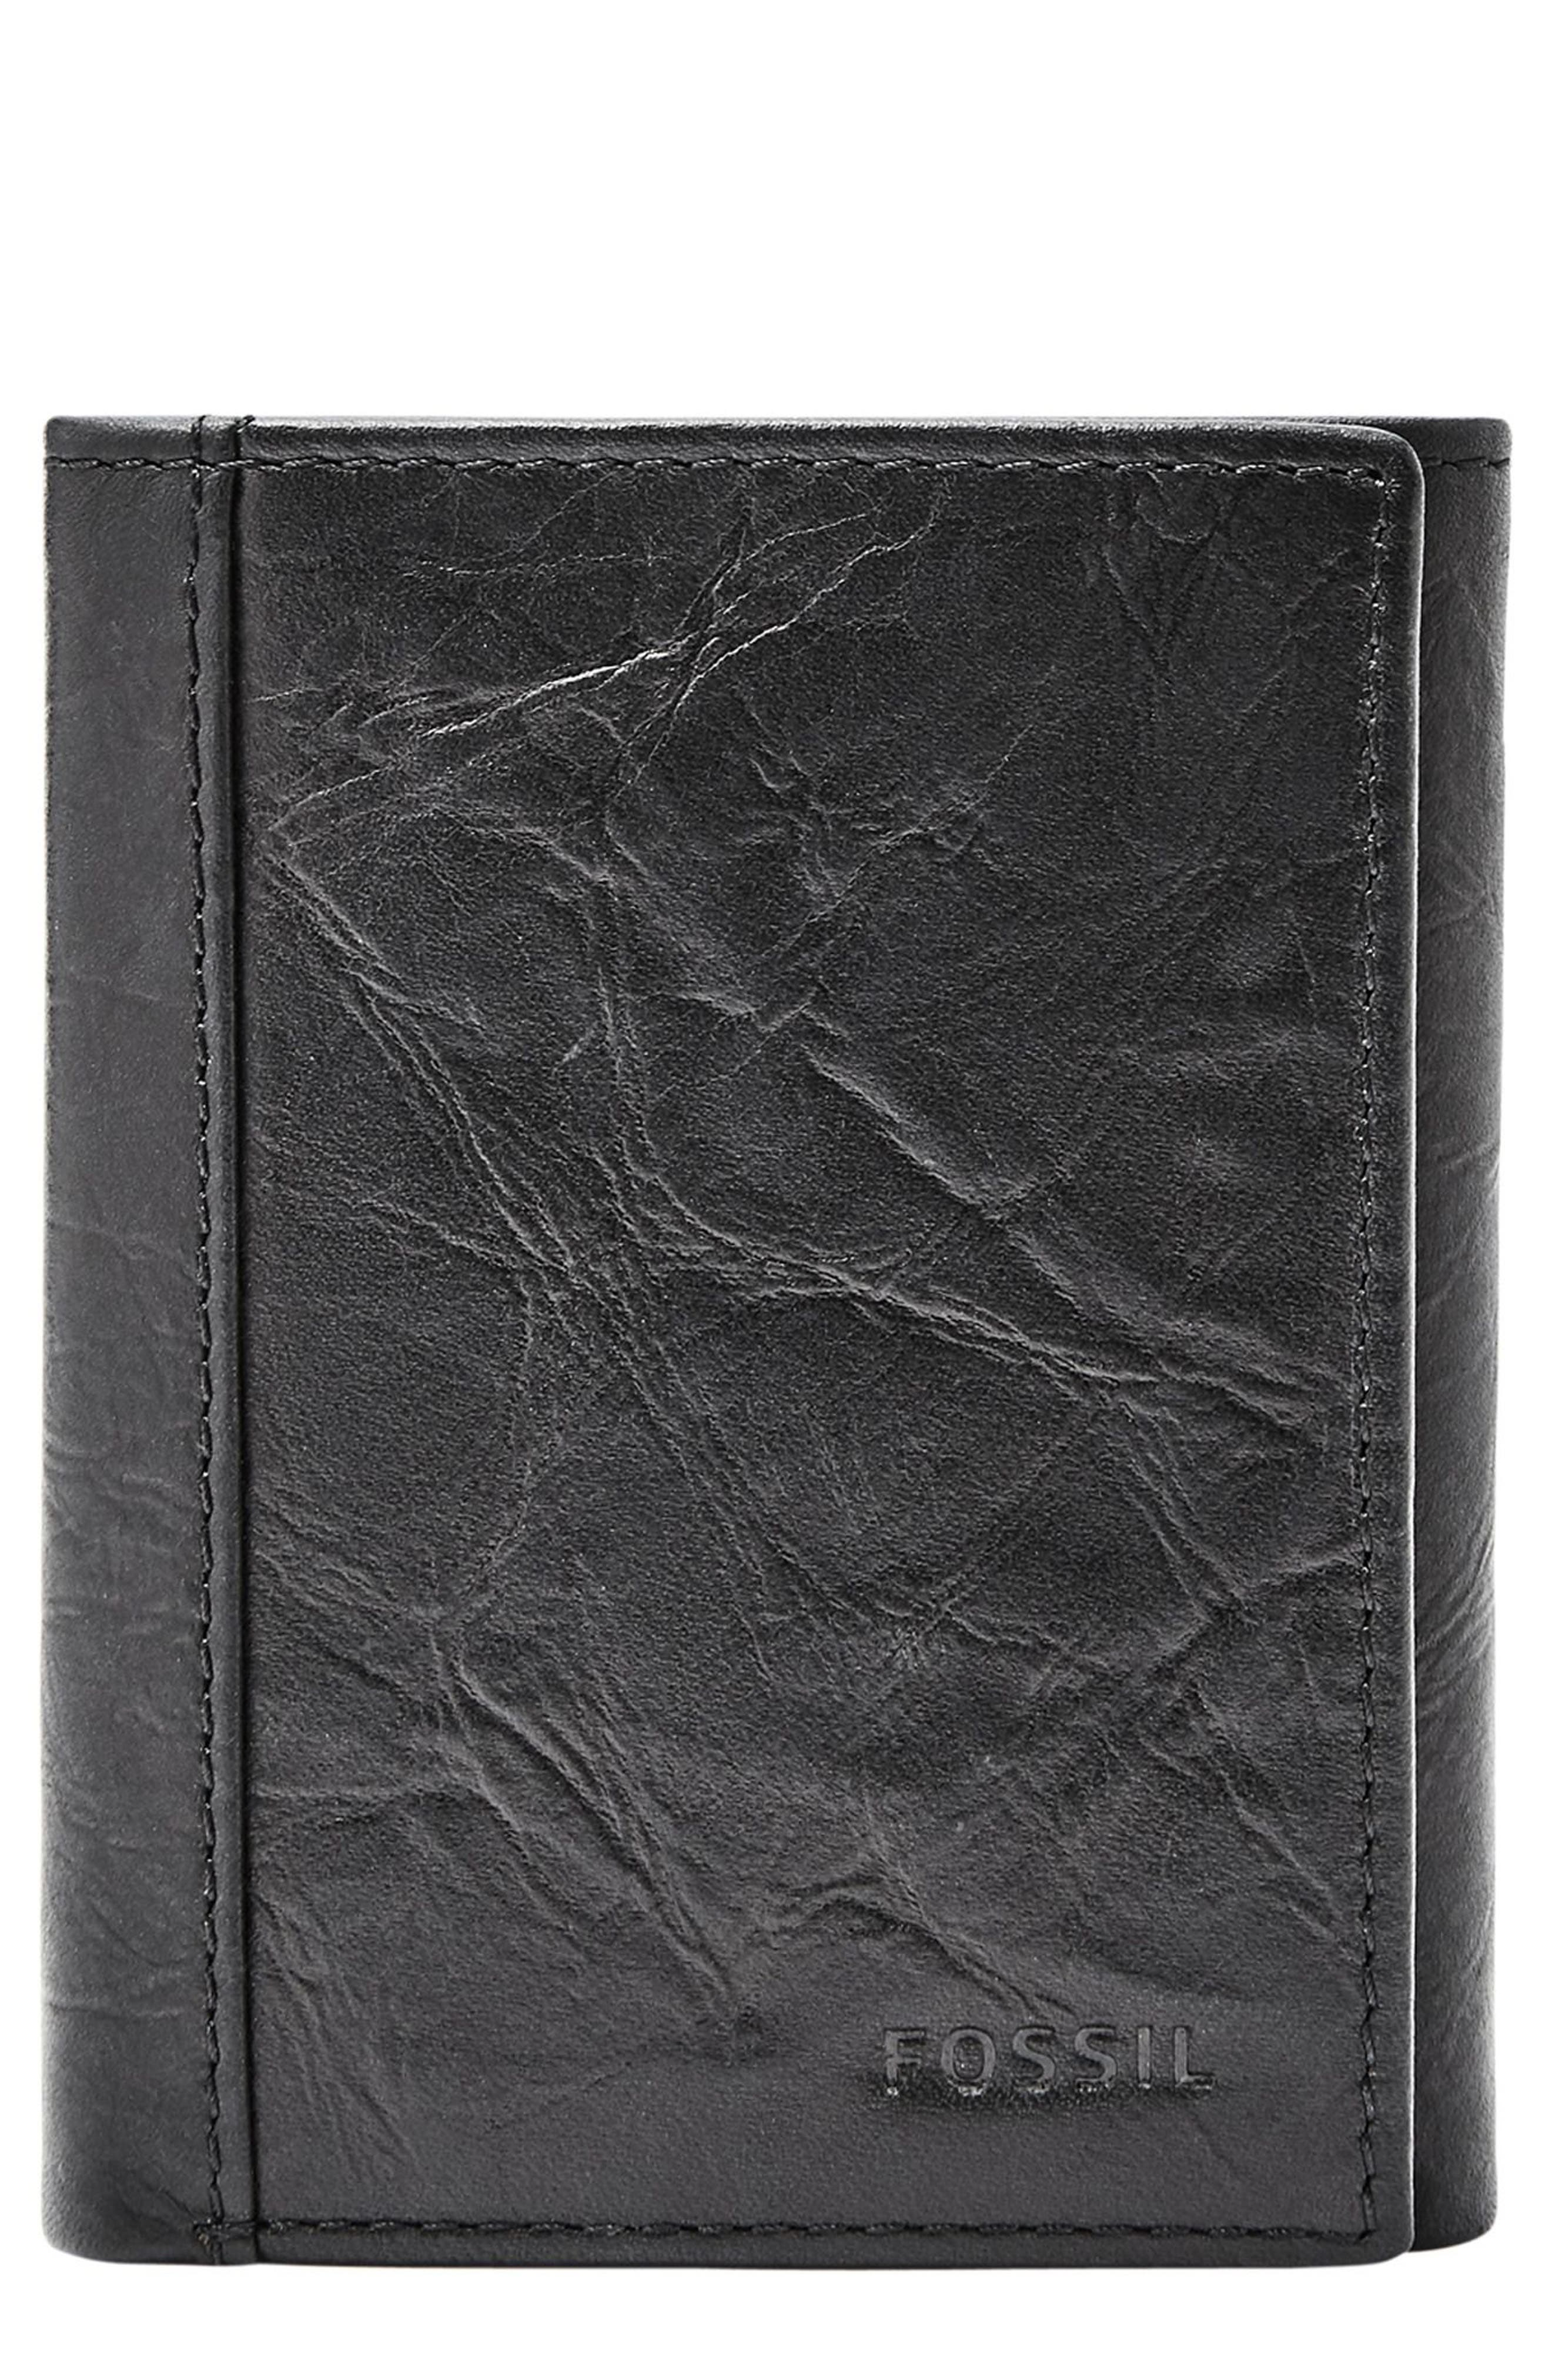 Main Image - Fossil Neel Leather Wallet